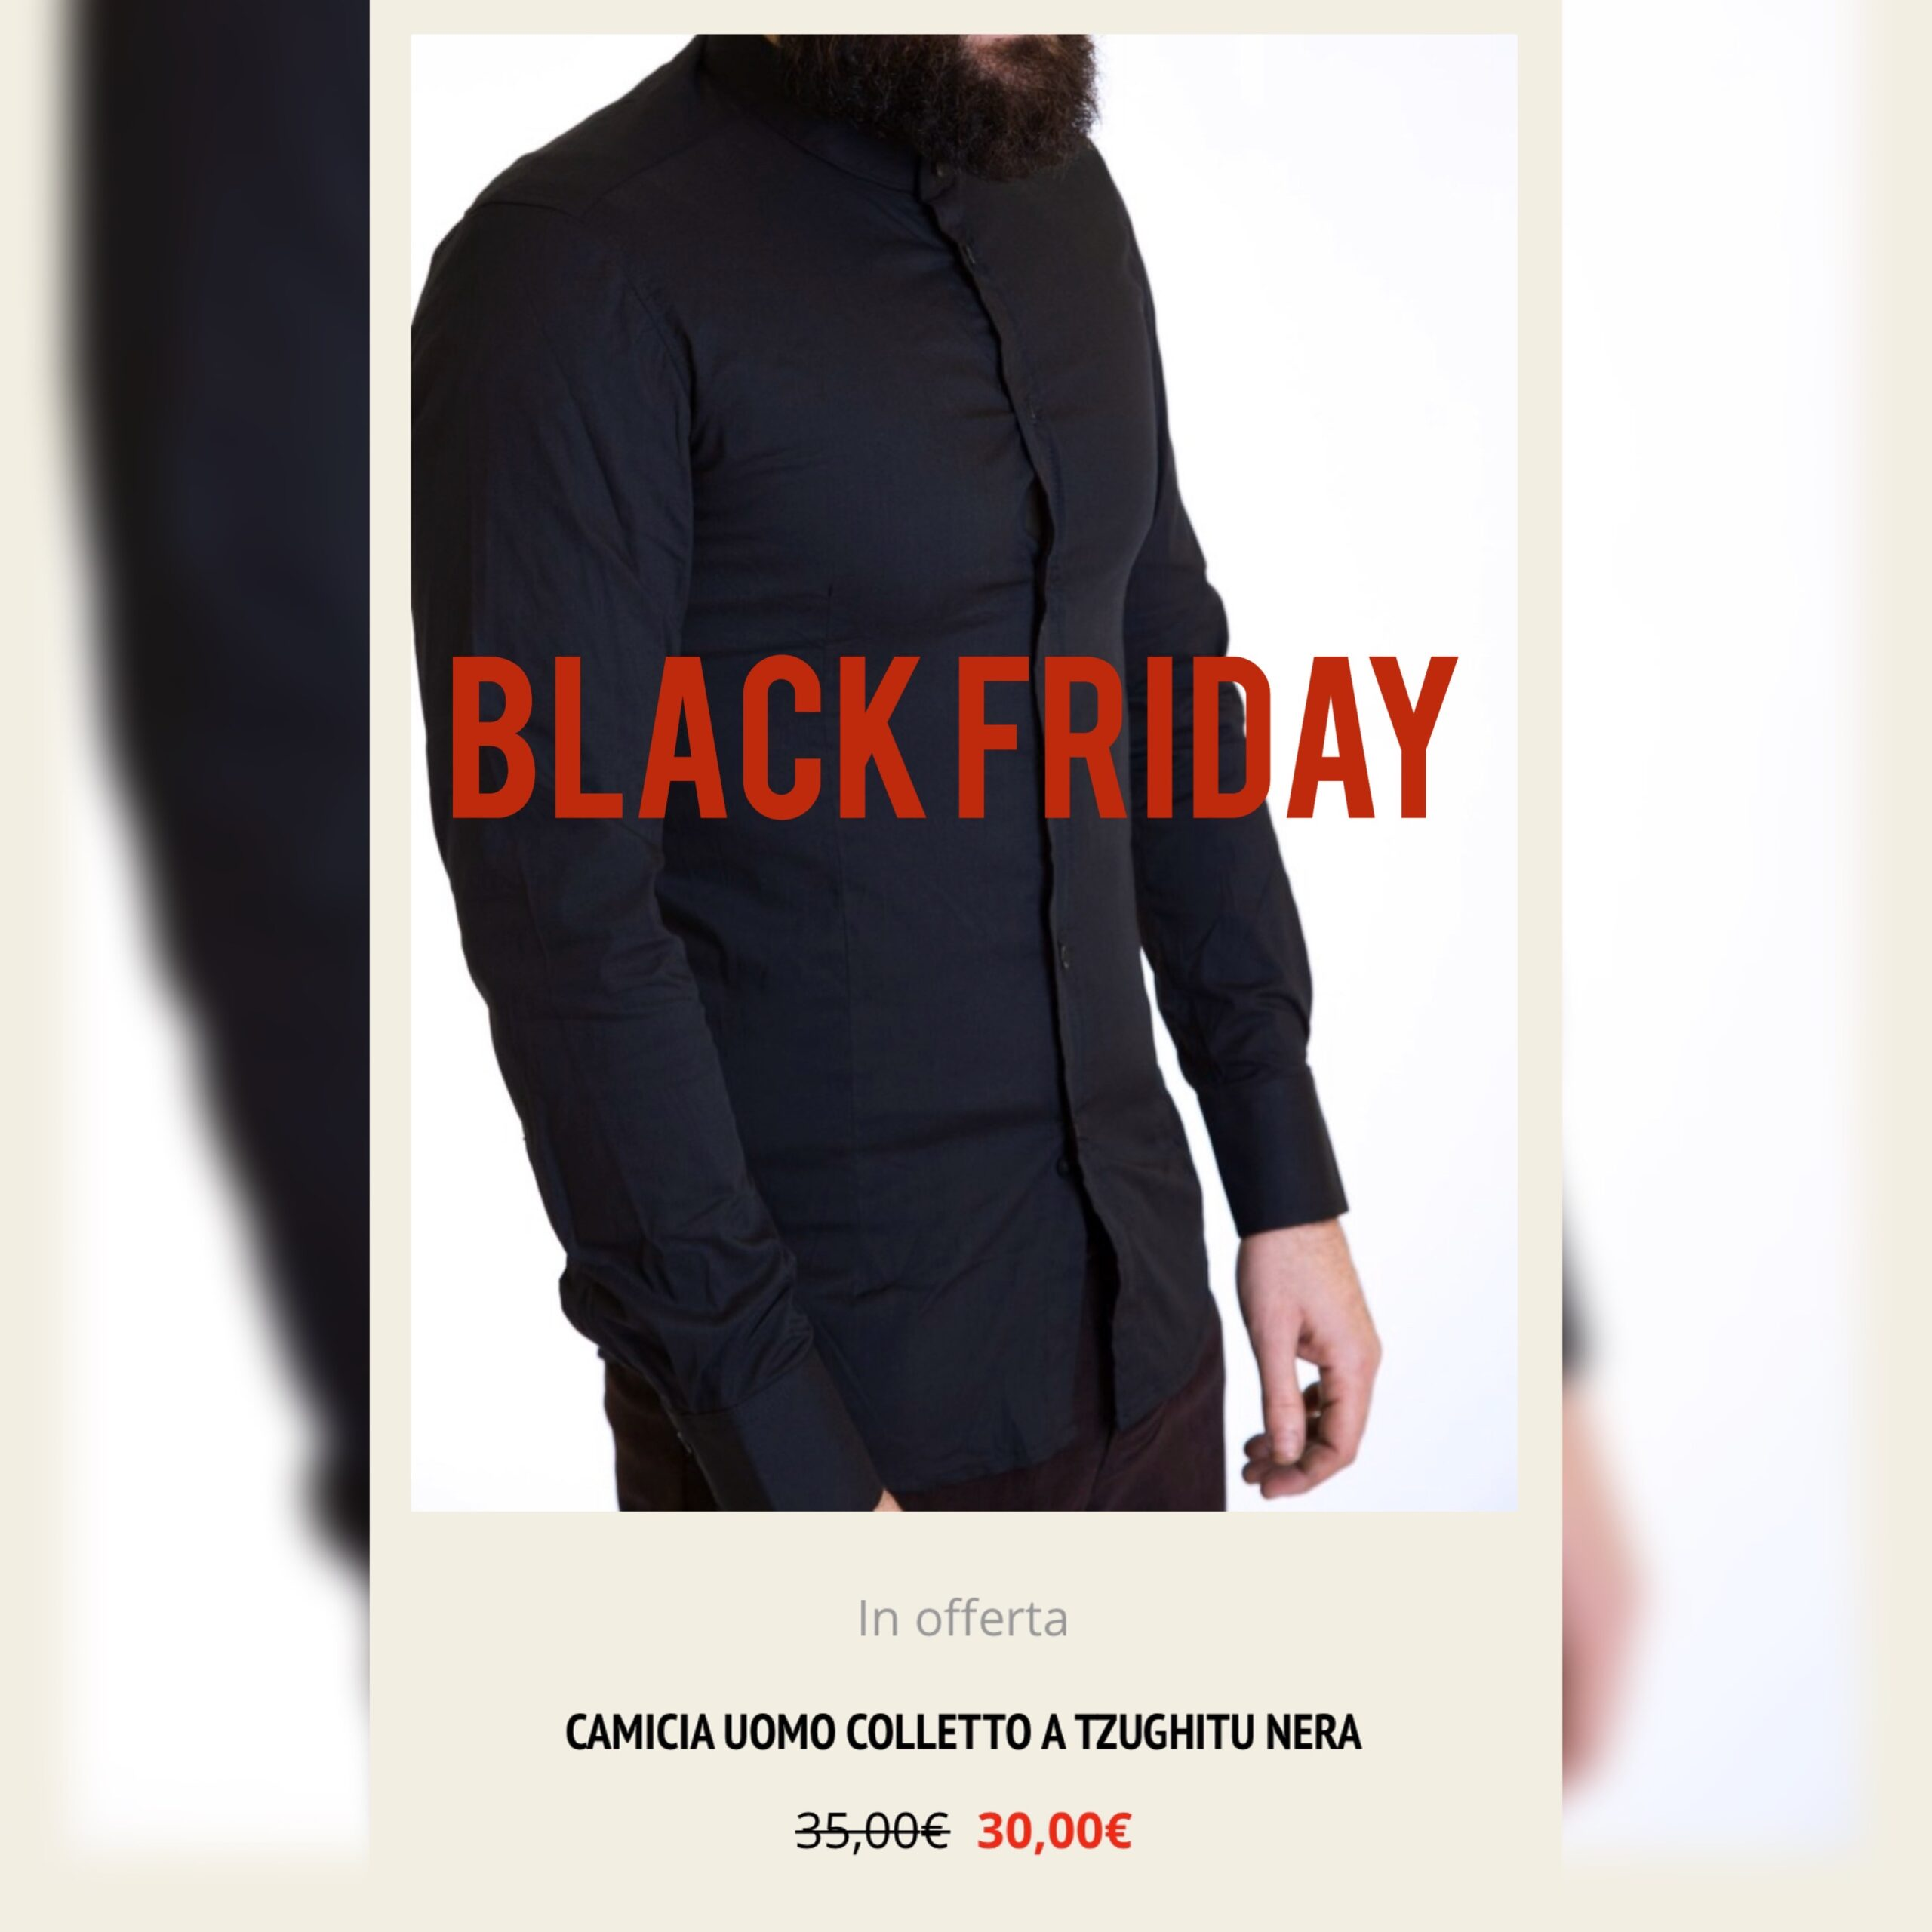 Black Friday?! Cosingius Friday